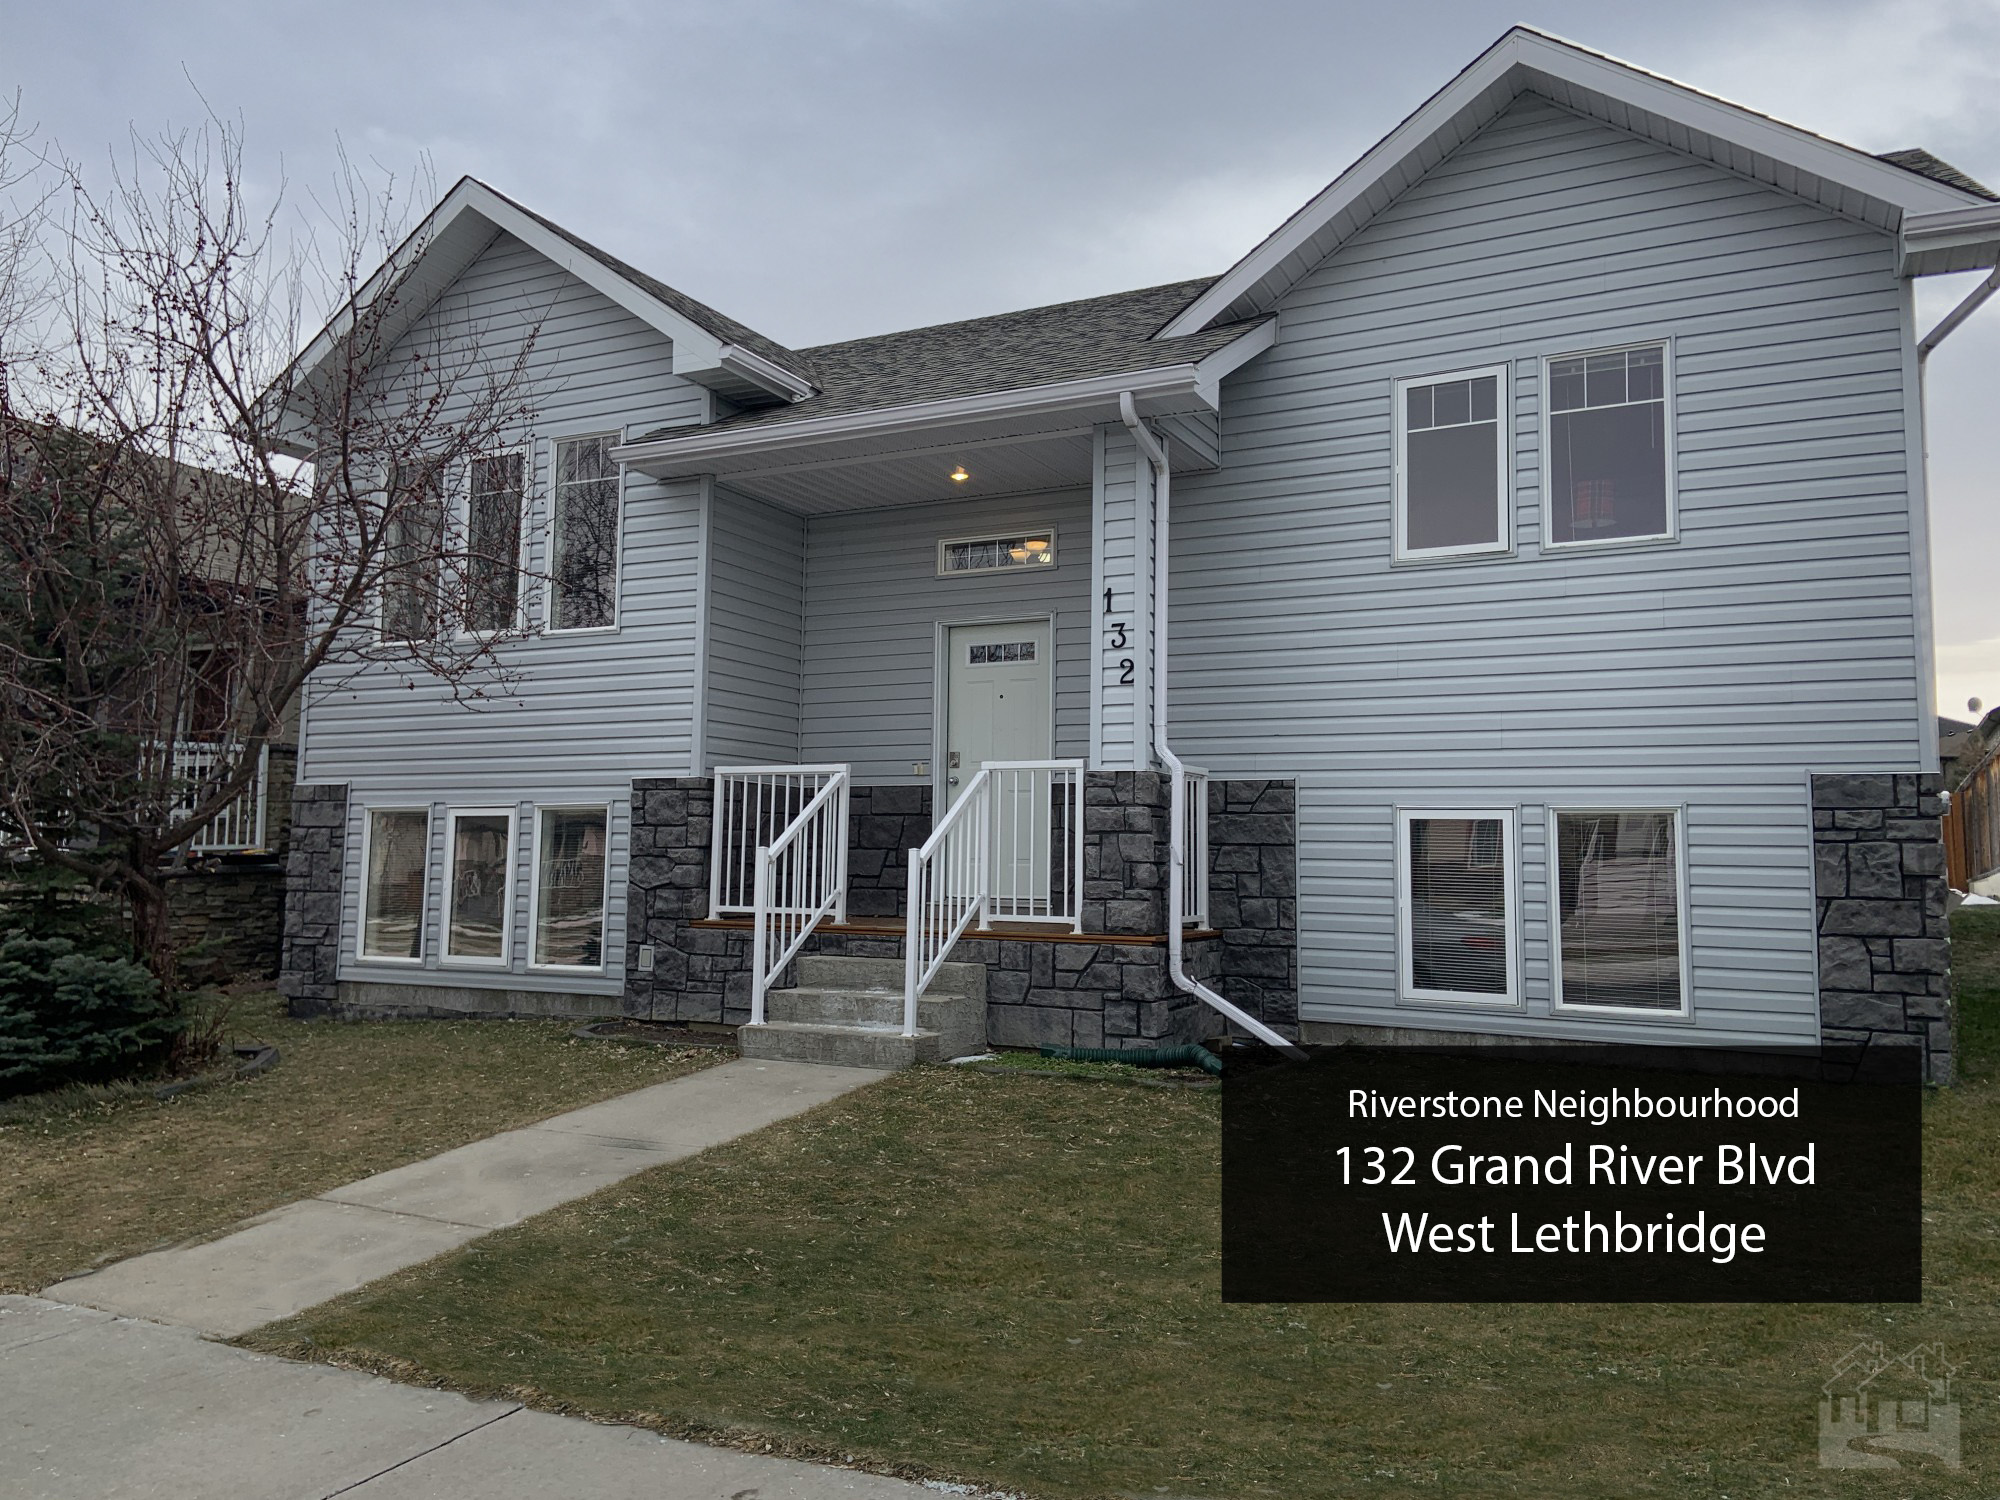 132 Grand River Blvd West Lethbridge (Lower Suite) Cover image